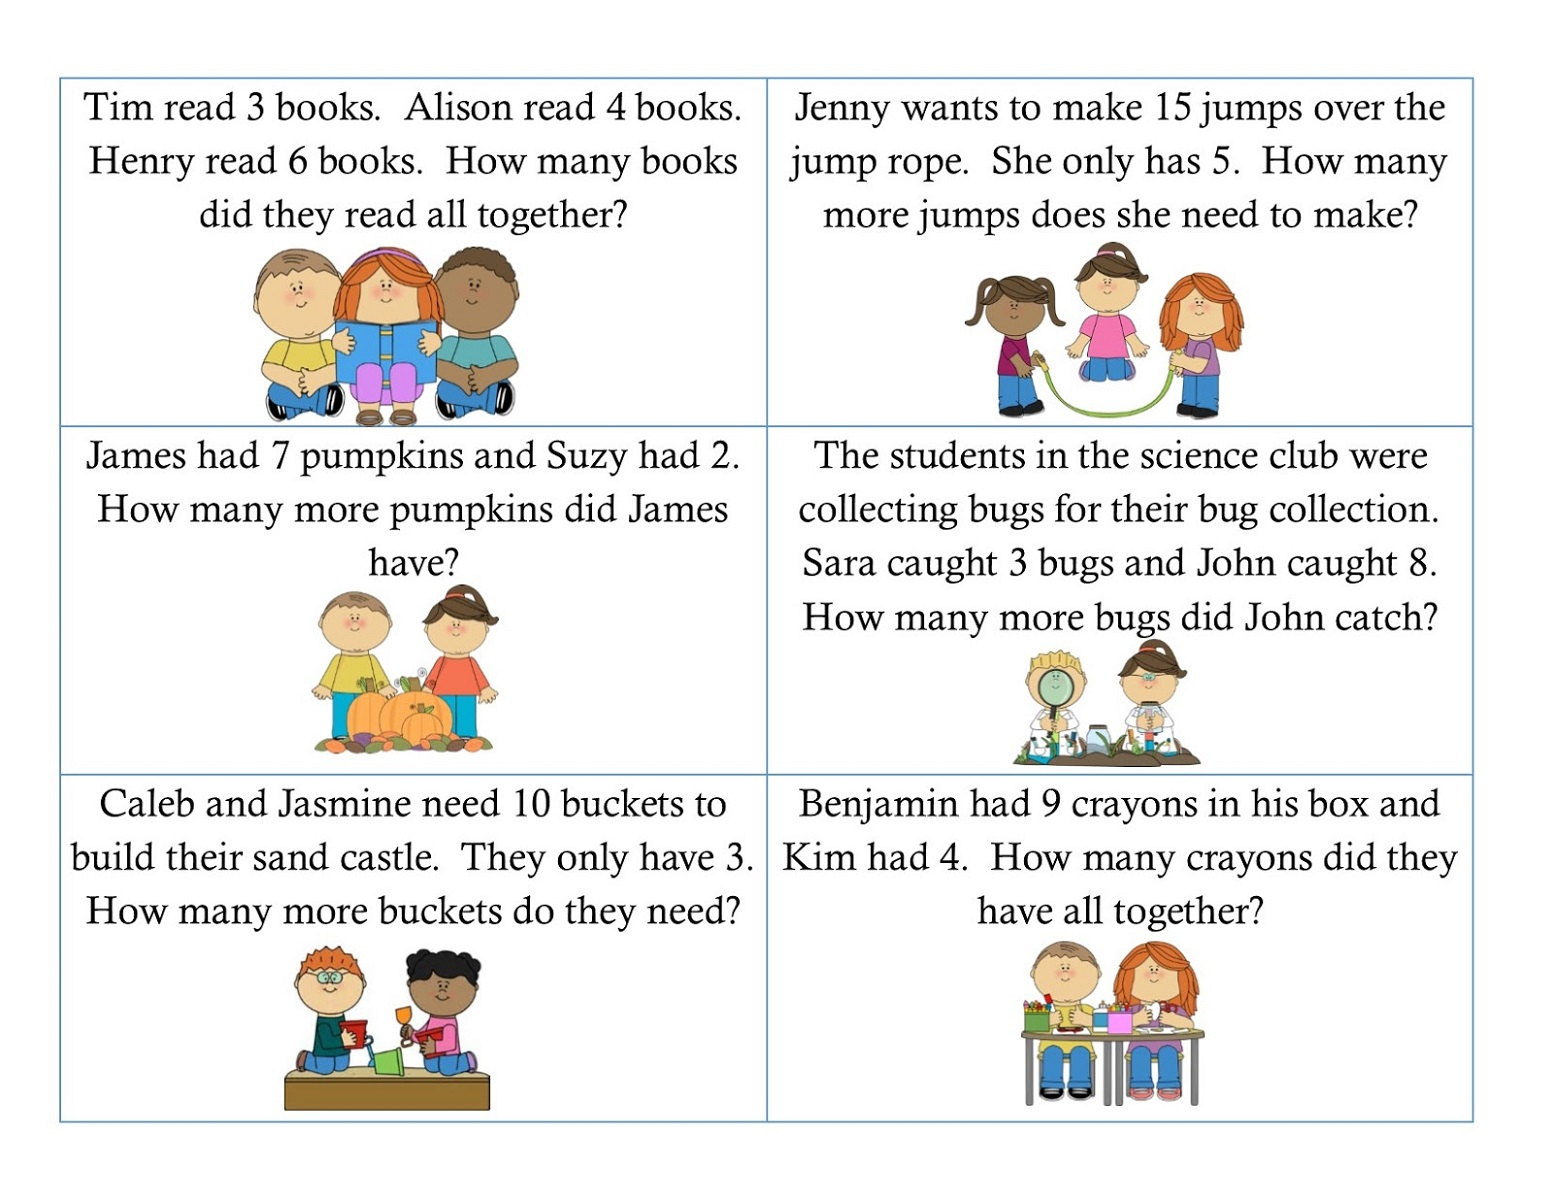 Basic Math Problems Worksheets First Grade